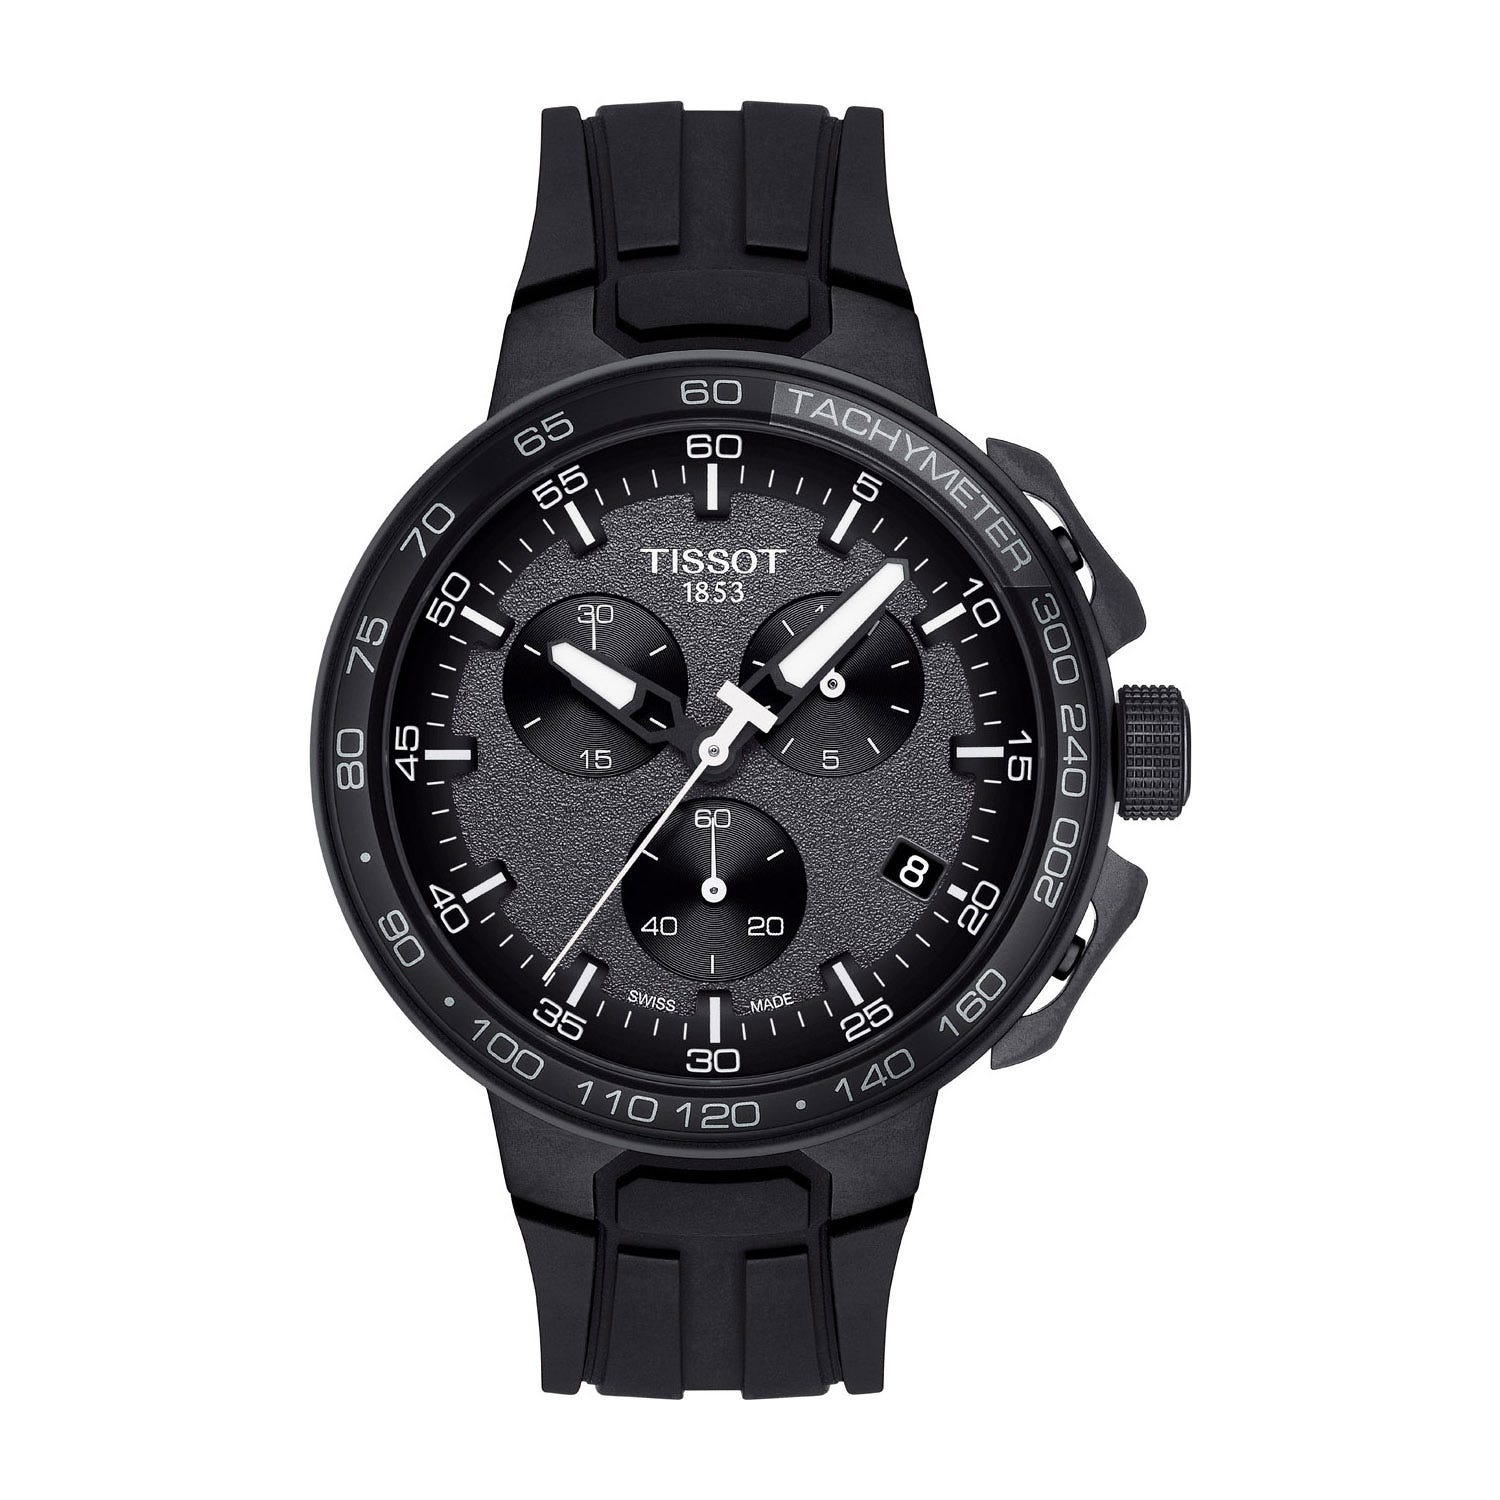 Tissot T-Race Chronograph Black Dial Black Rubber Strap Men's Watch